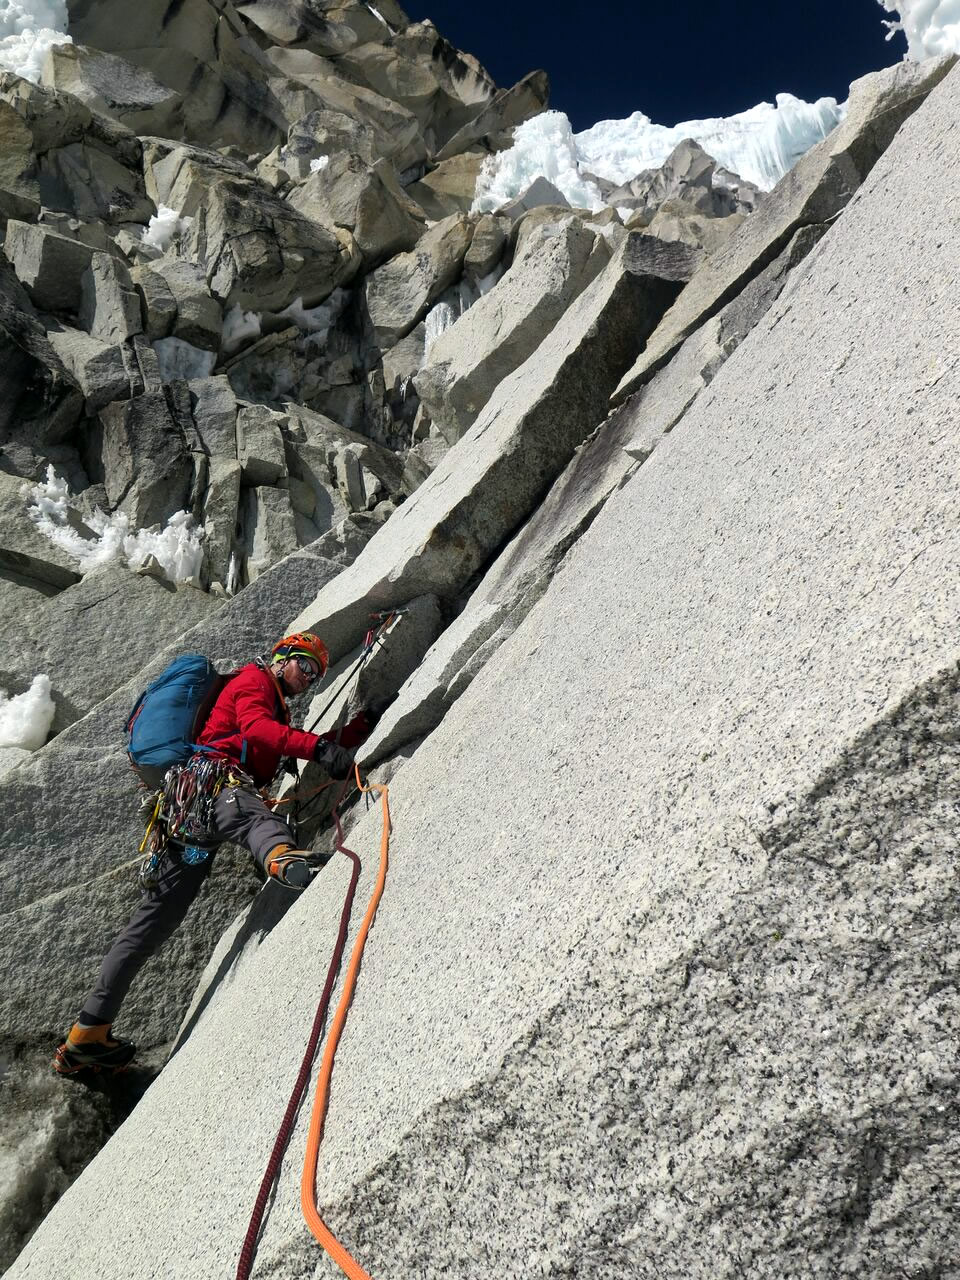 Ben Dare leading the first pitch of mixed terrain on the peak's upper north face. [Photo] Steve Skelton